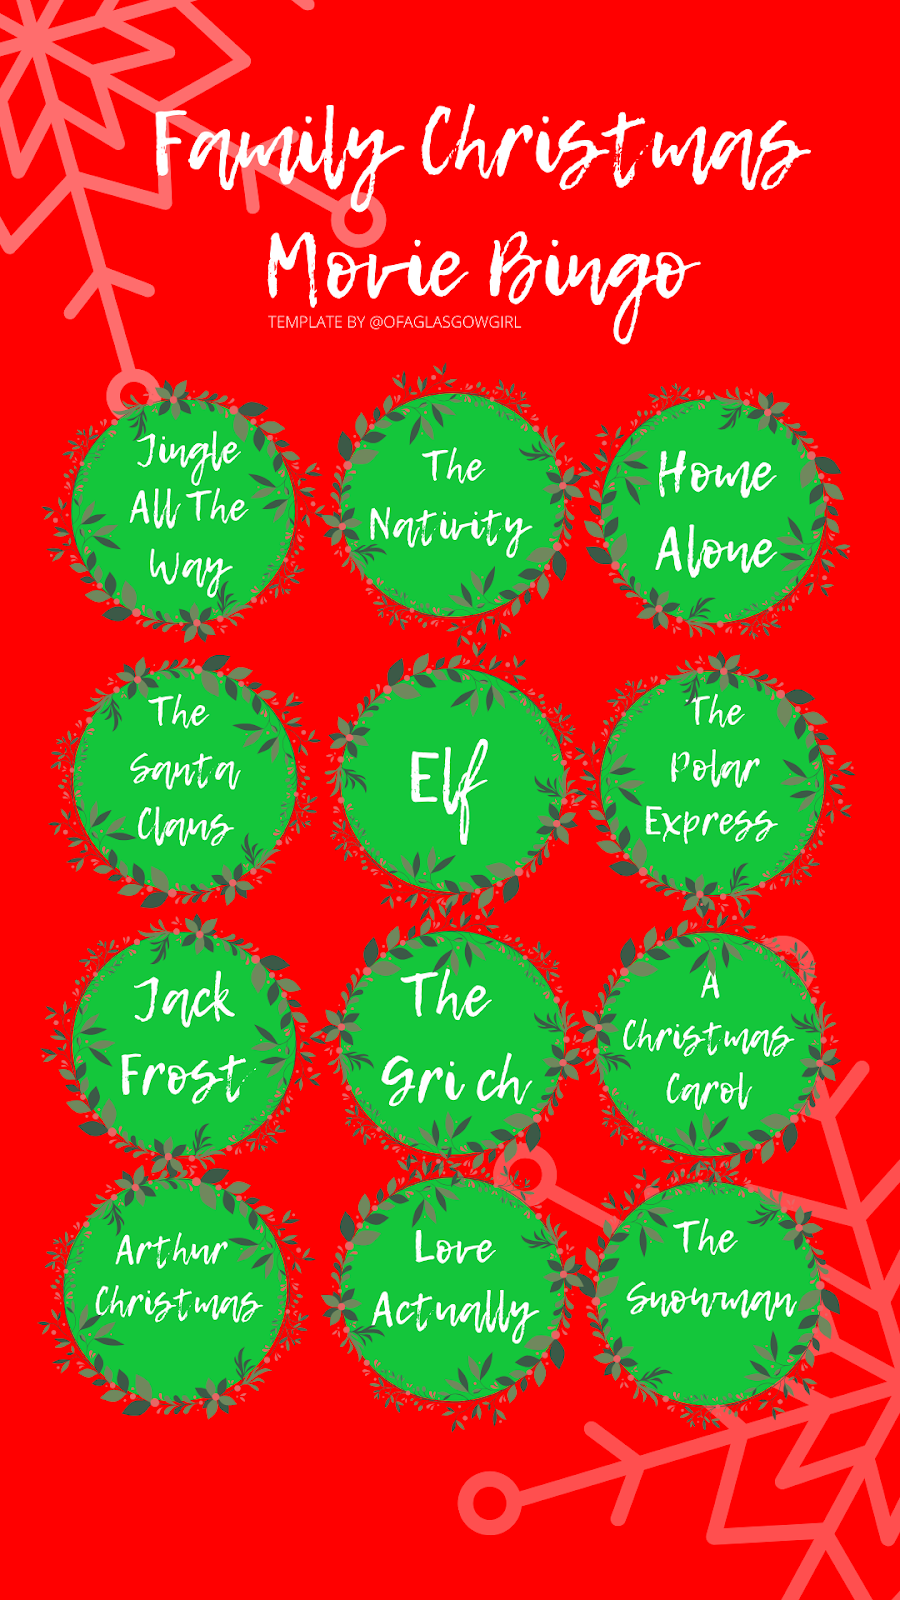 Family Christmas movie bingo printable or can be used as an Instagram template on Thelifeofaglasgowgirl.co.uk - A graphic with a red background and 12 green circles with white writing overlay with movie titles.